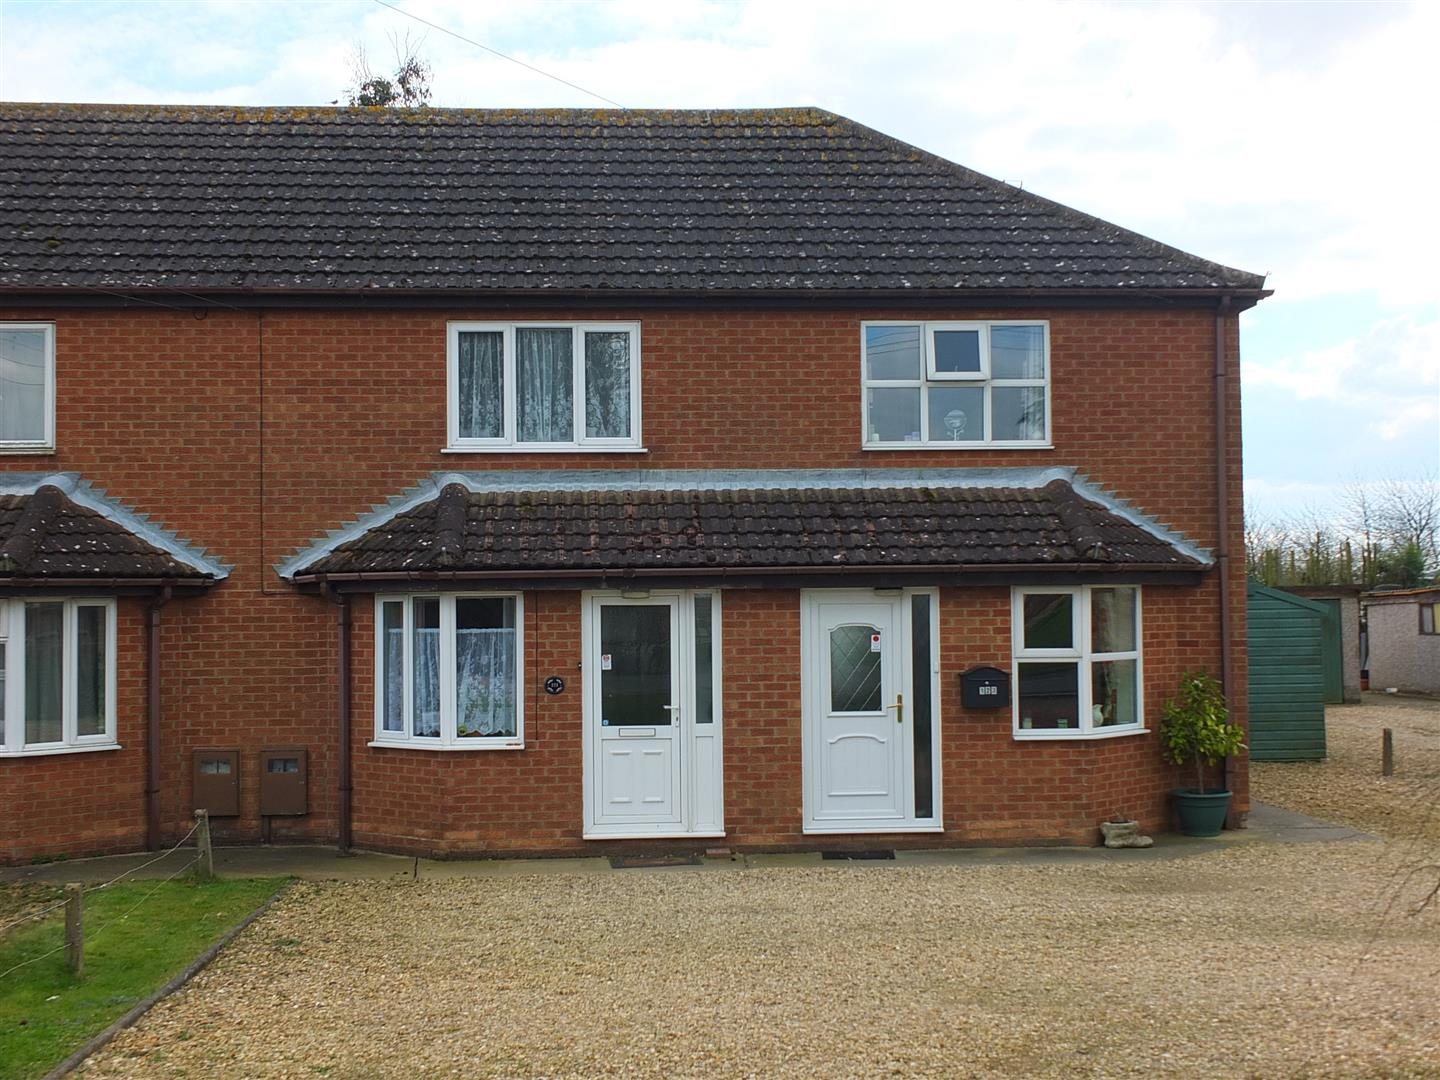 2 bed house to rent in Spalding, PE12 0EF - Property Image 1